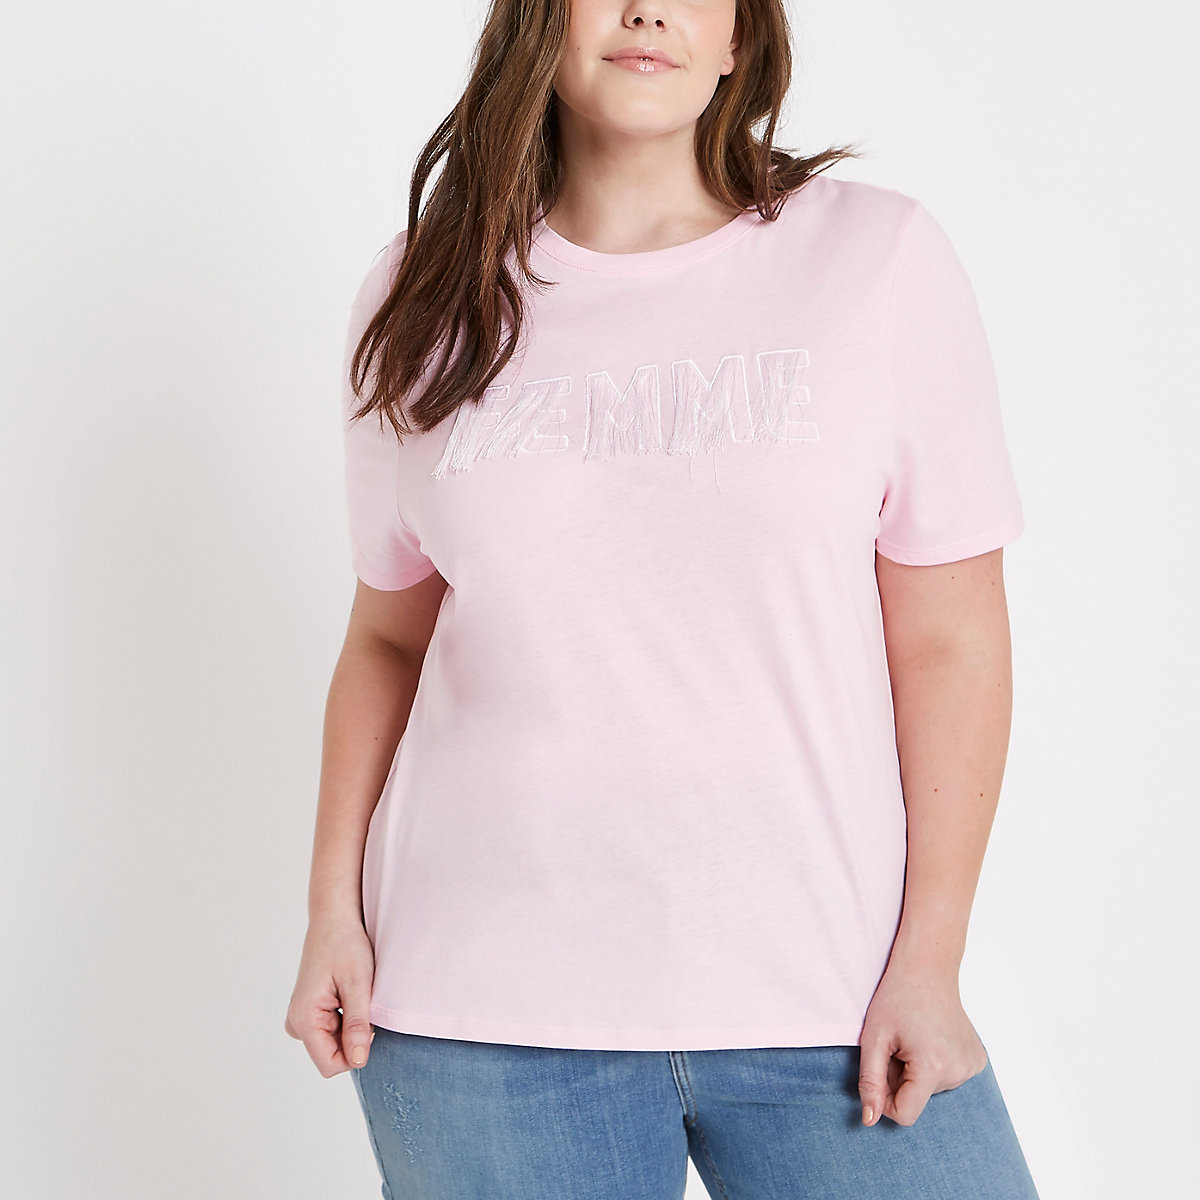 Plus pink 'Femme' fitted T-shirt